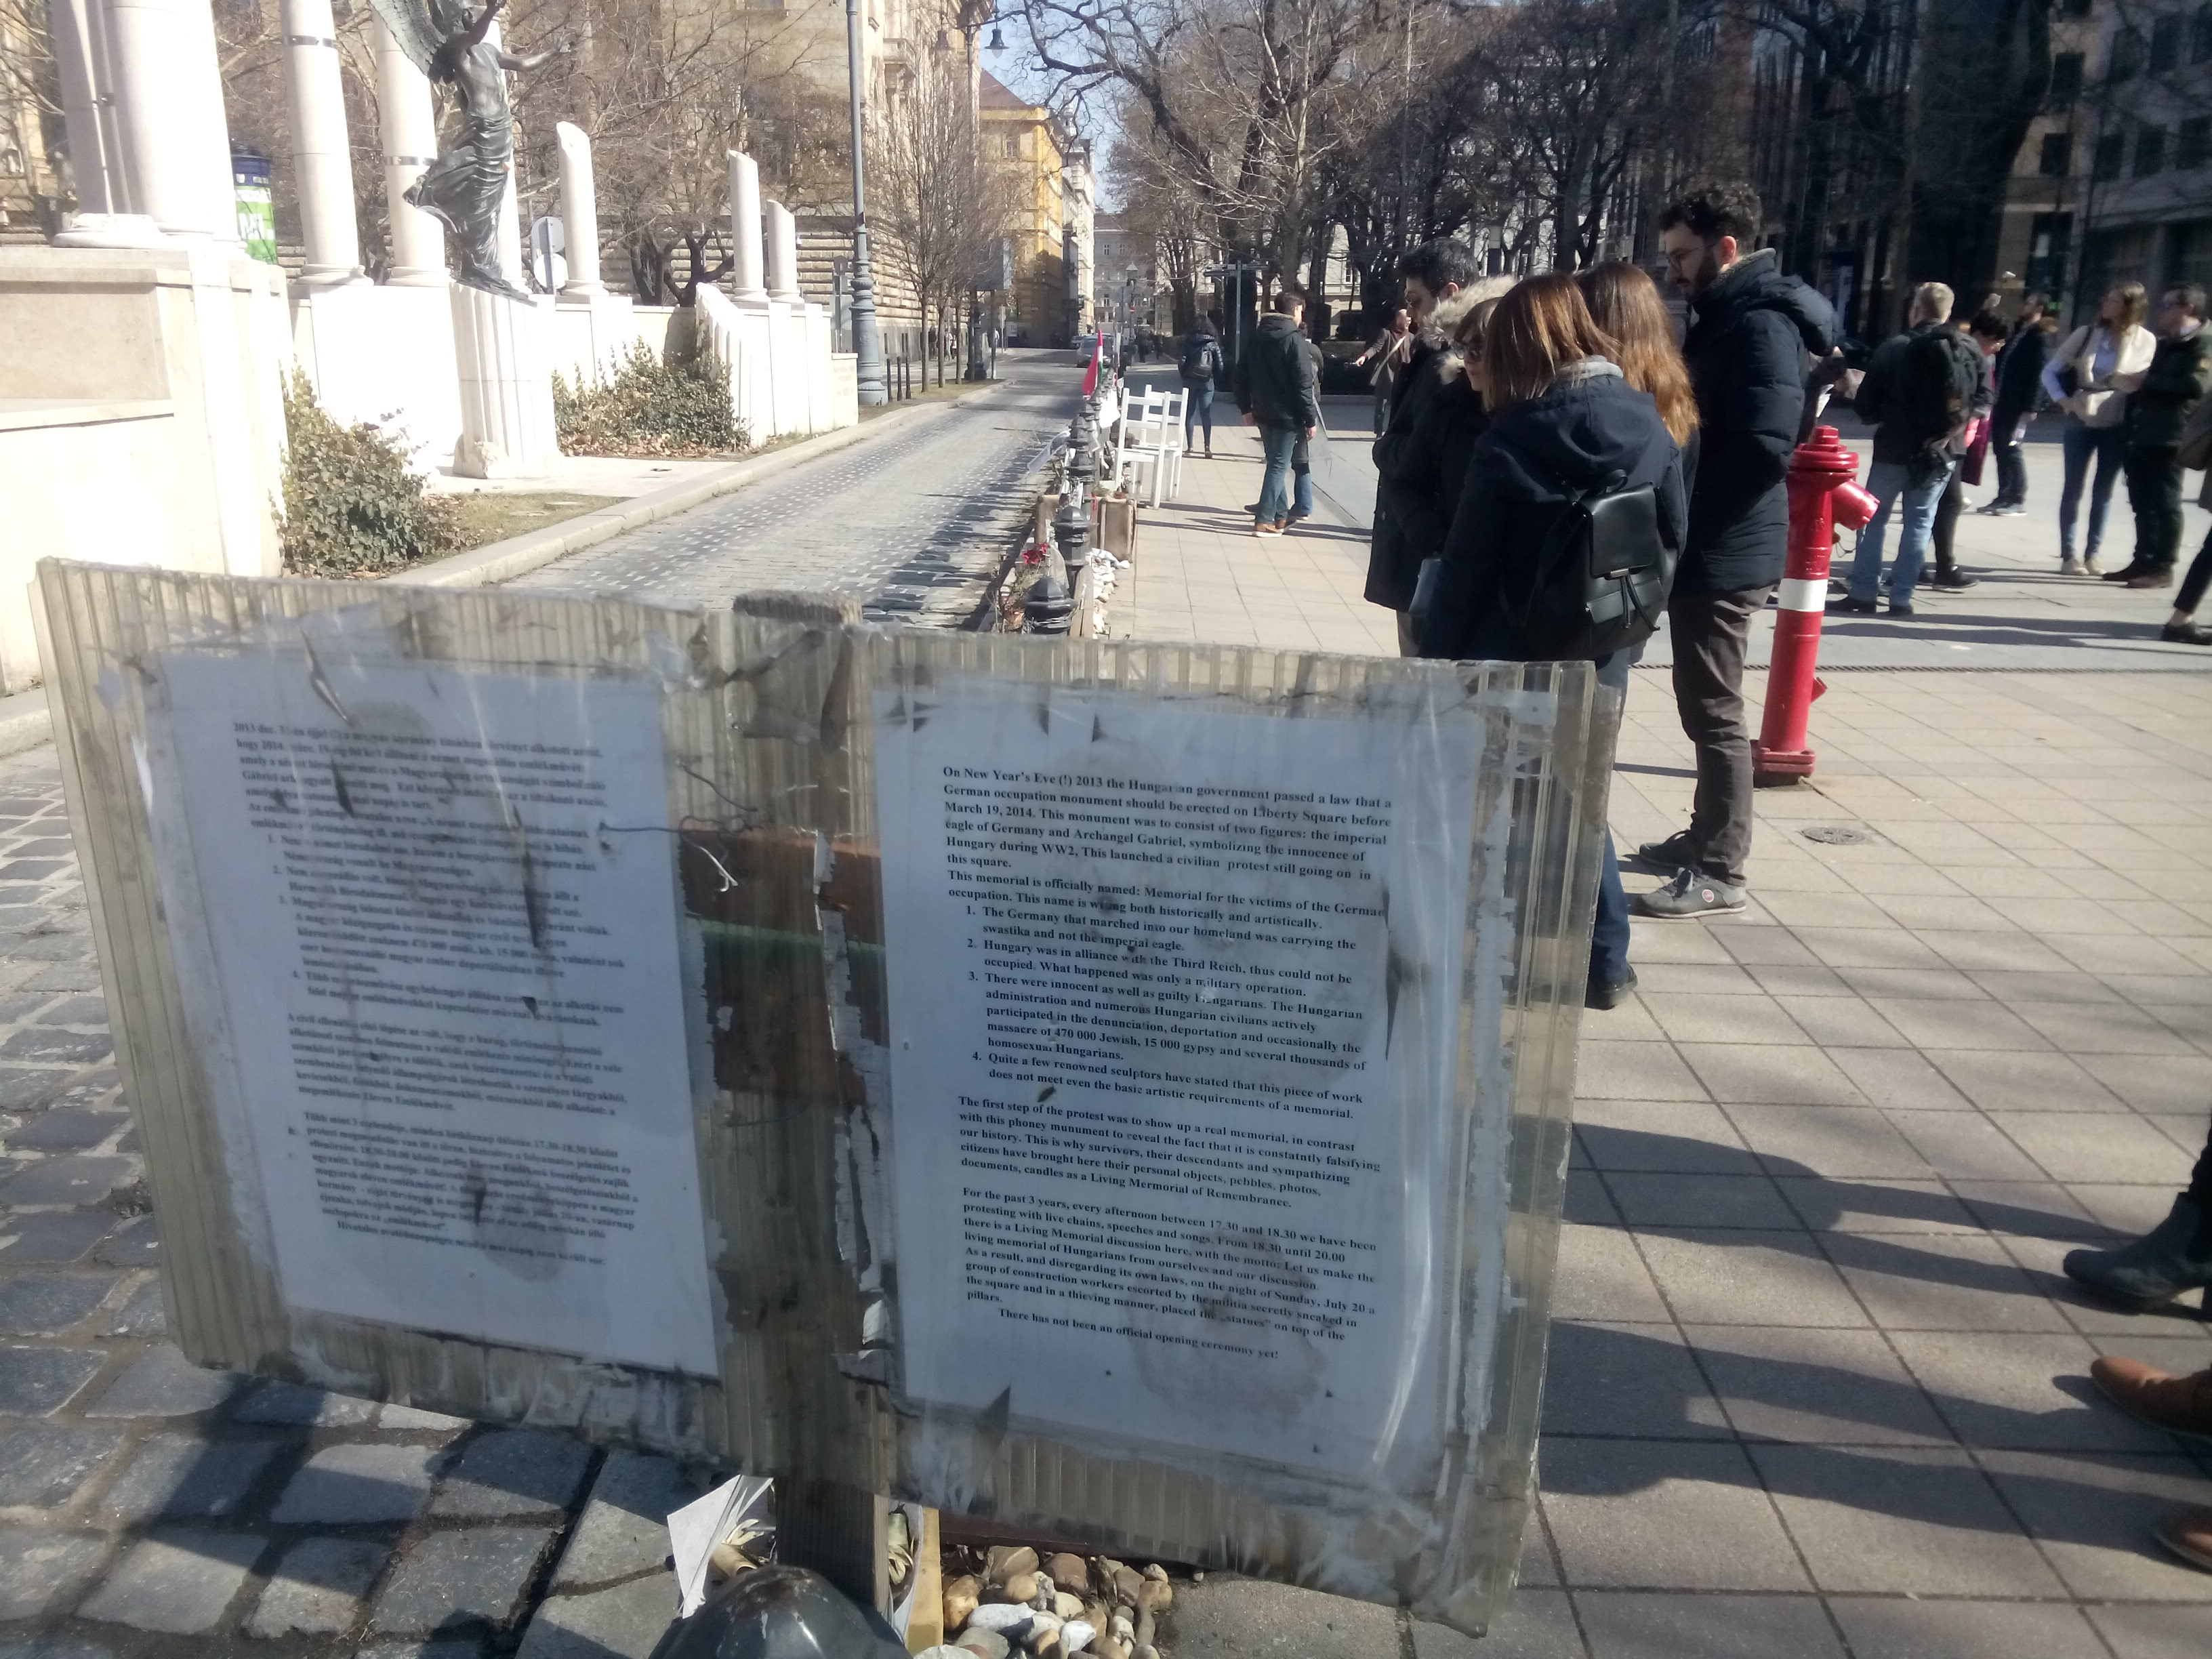 A typed sign on a post against a long row of memorials, while small groups of tourists read them